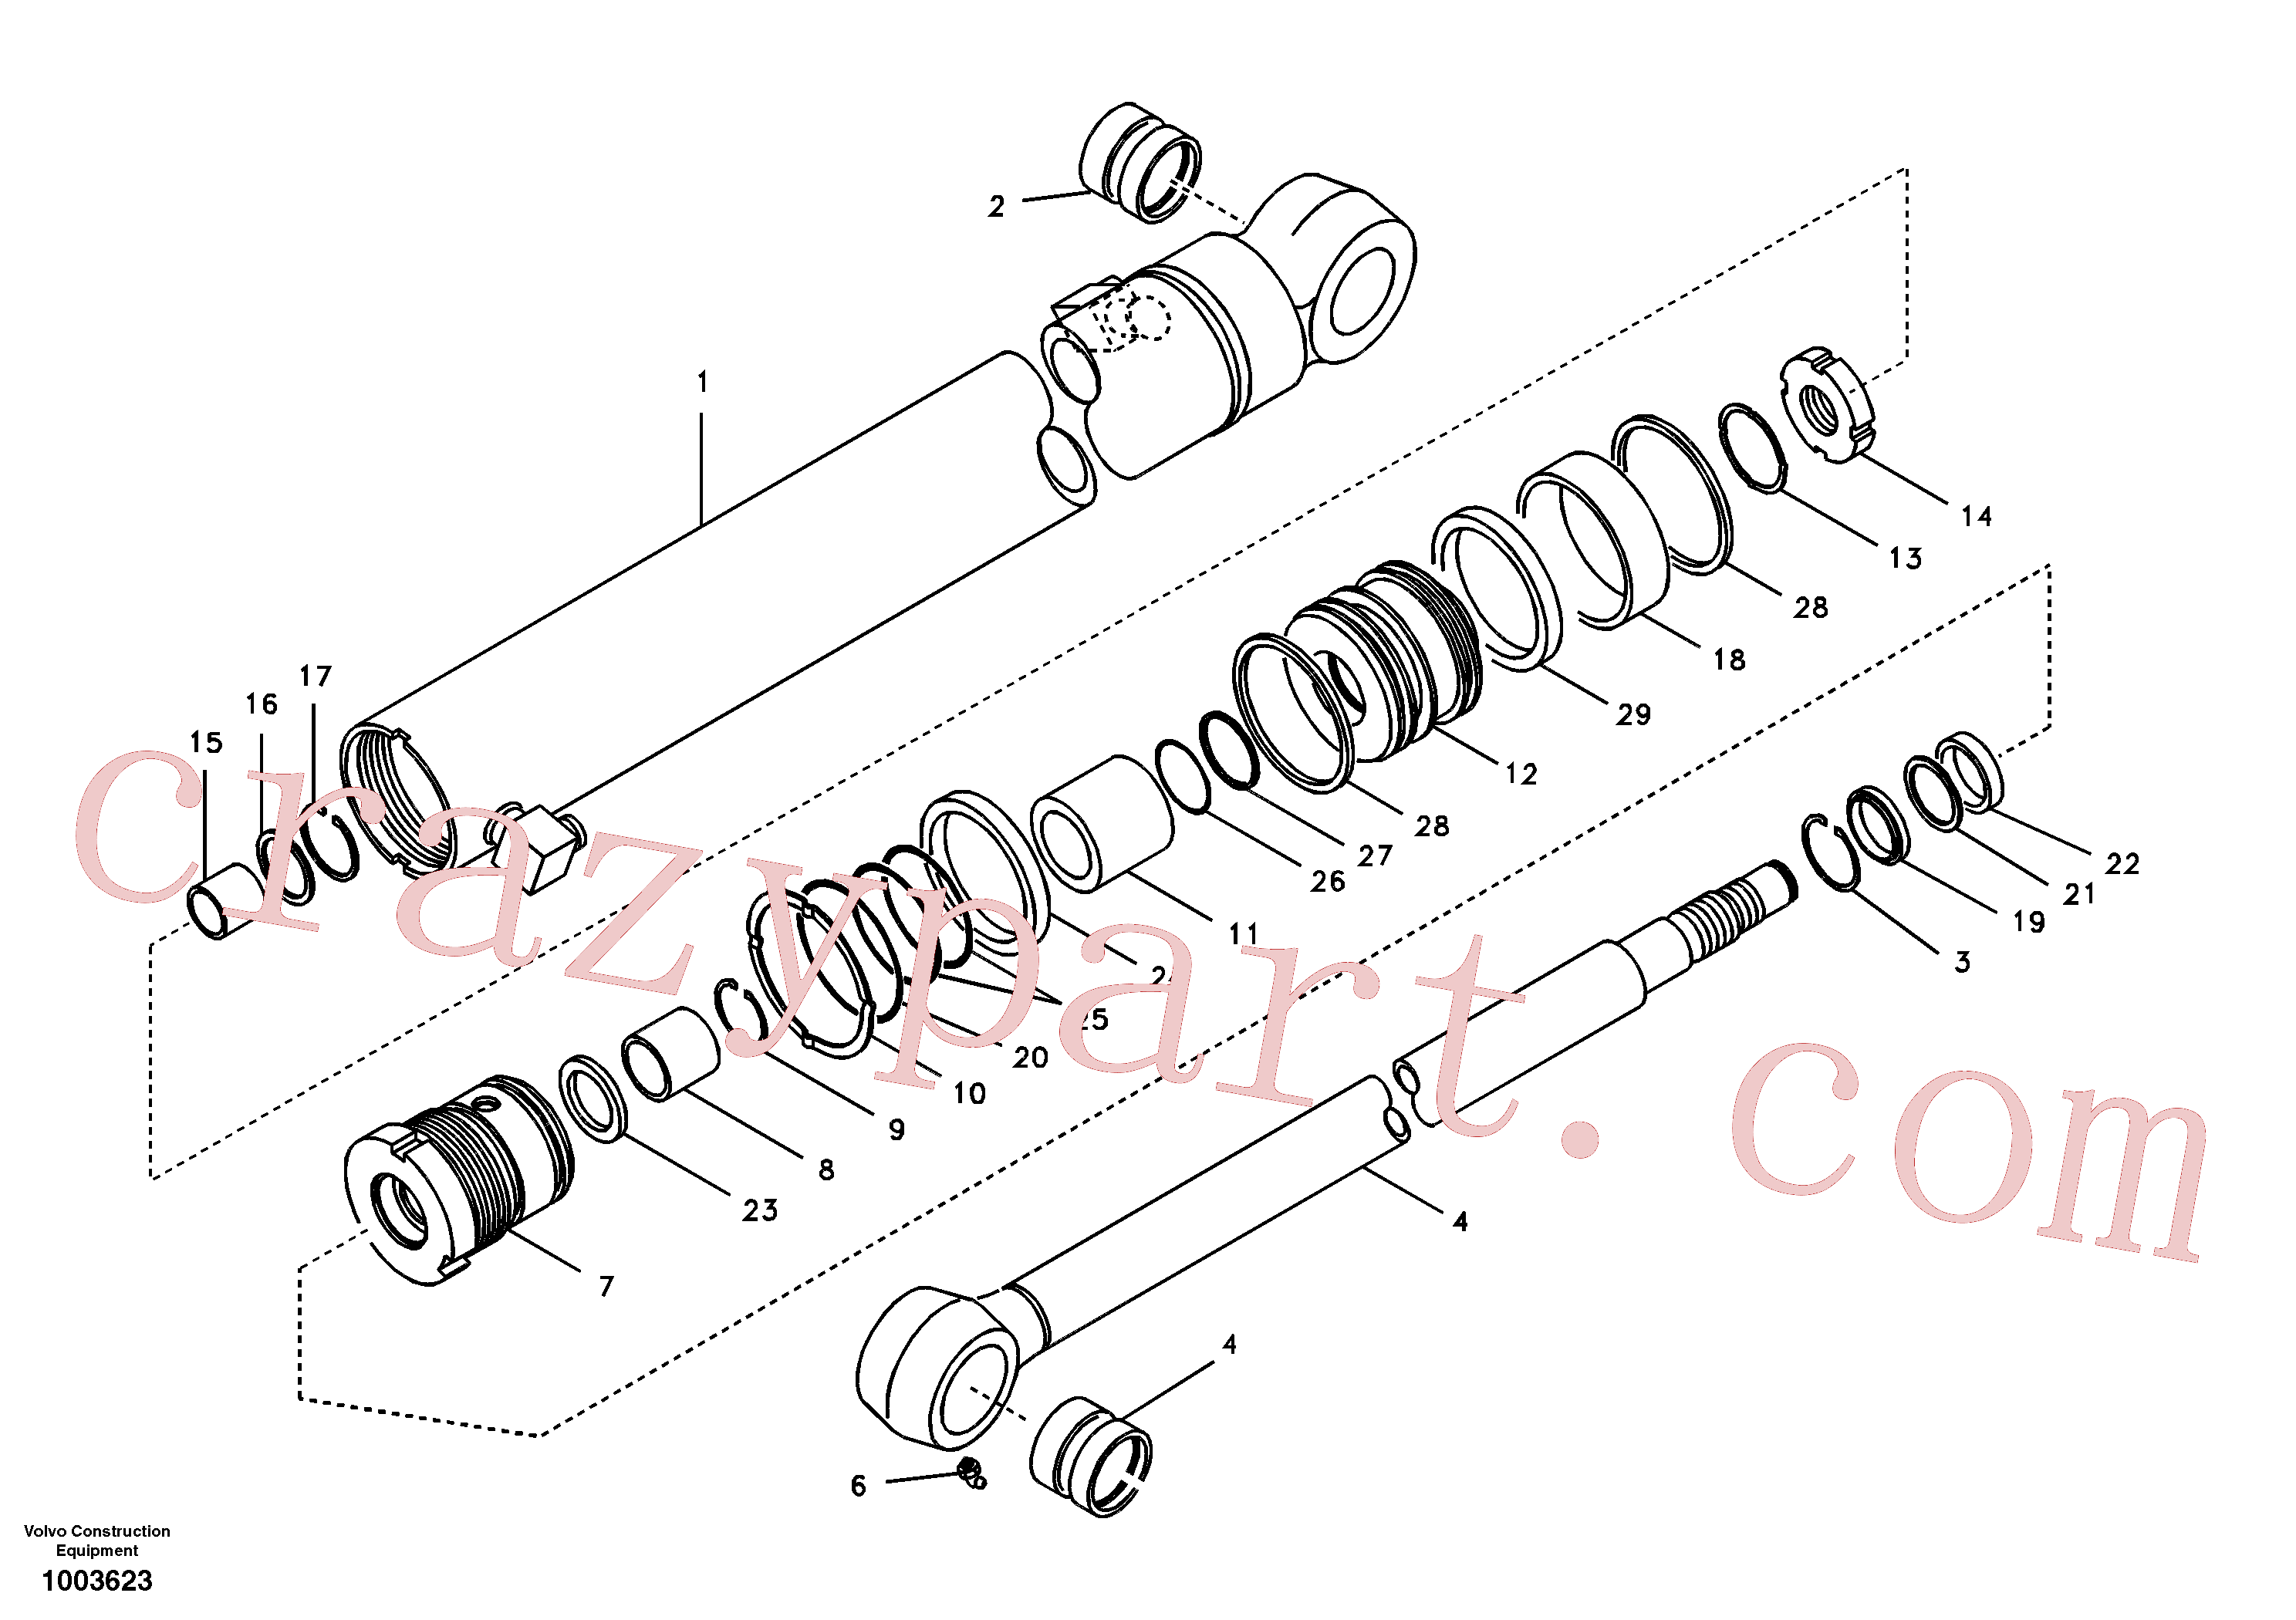 SA9556-05500 for Volvo Dipper arm cylinder(1003623 assembly)